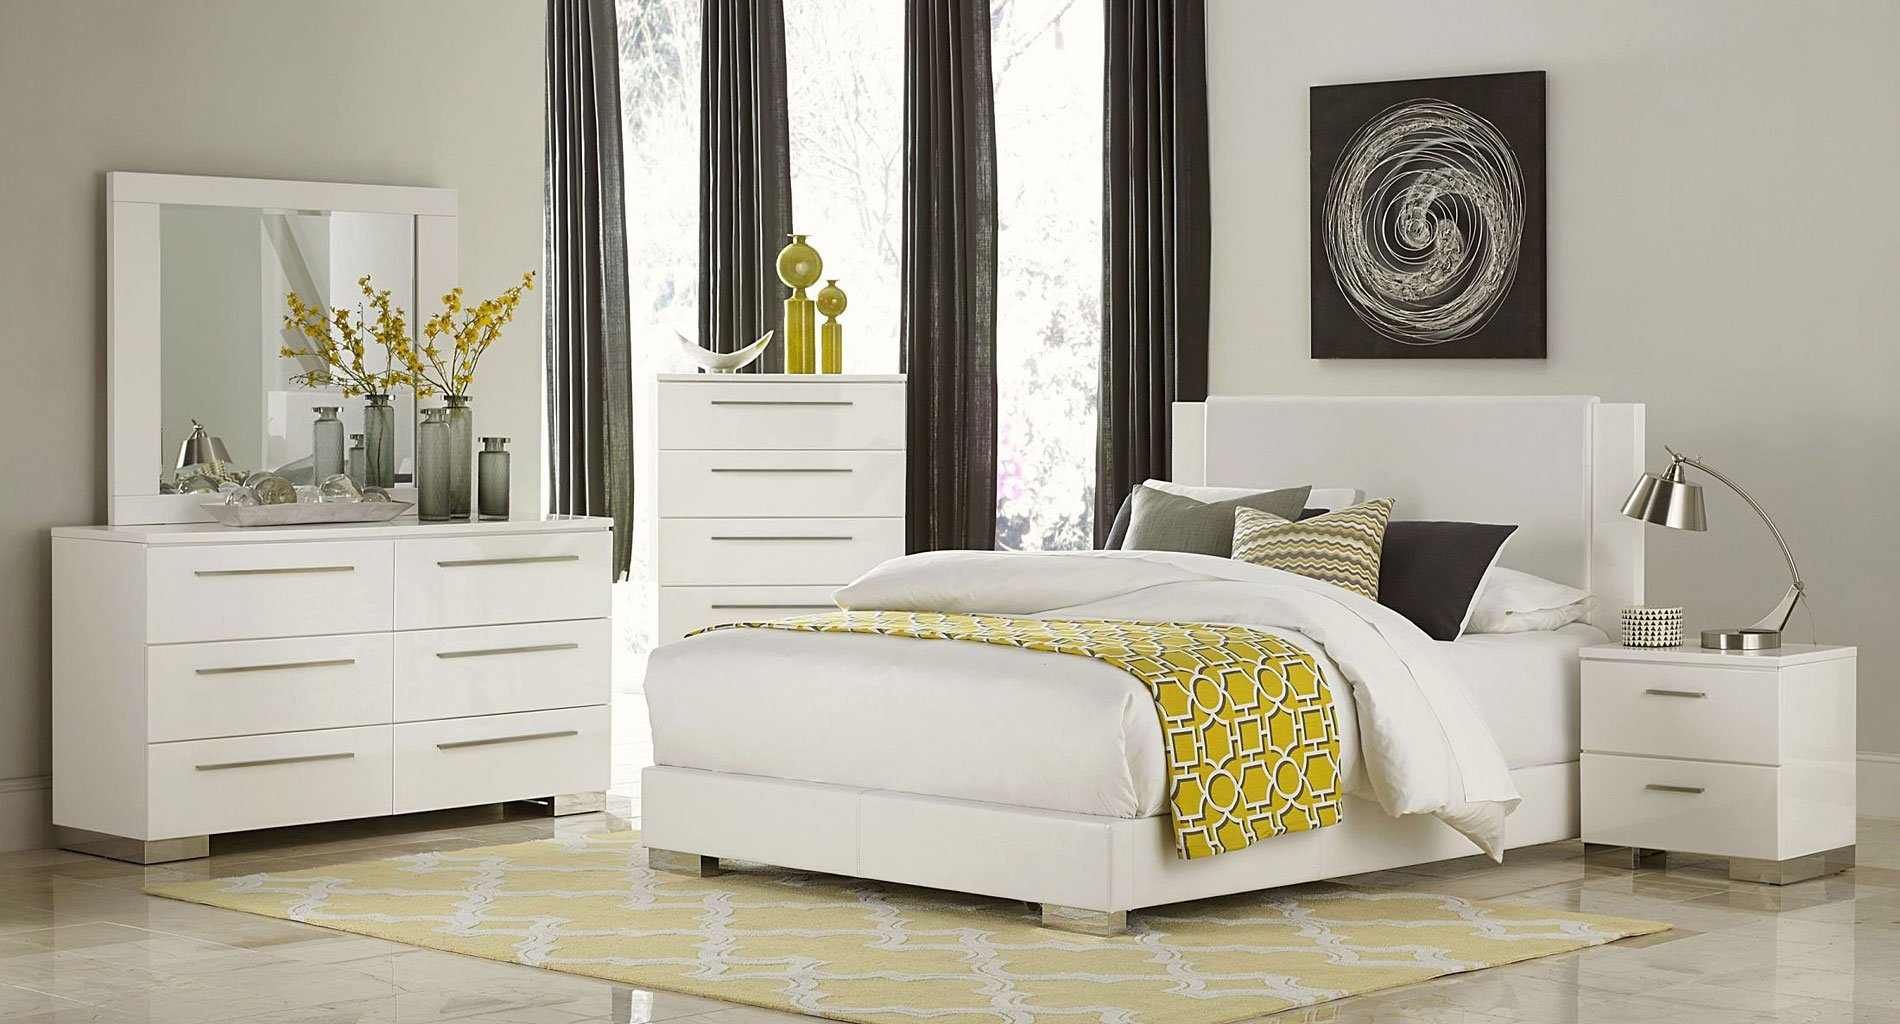 Linnea Bedroom Set